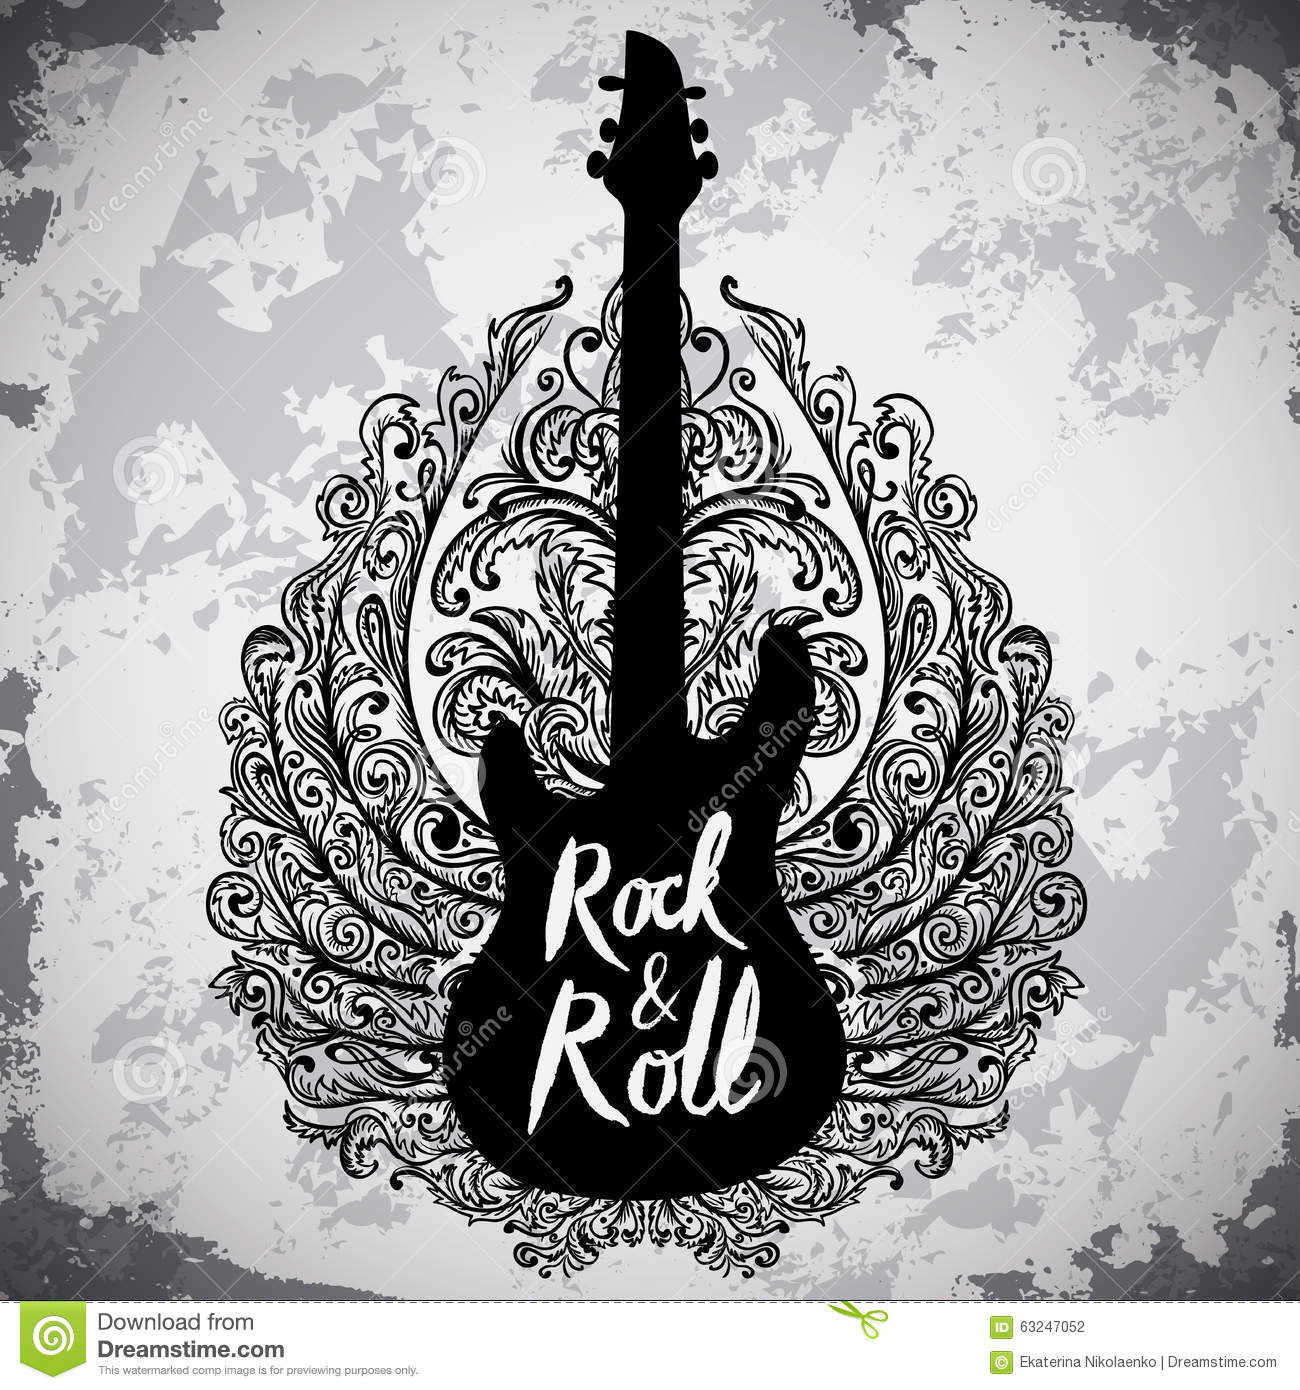 vintage hand drawn poster with electric guitar  ornate rock and roll clip art of 60, 70, rock and roll clip art 1980s